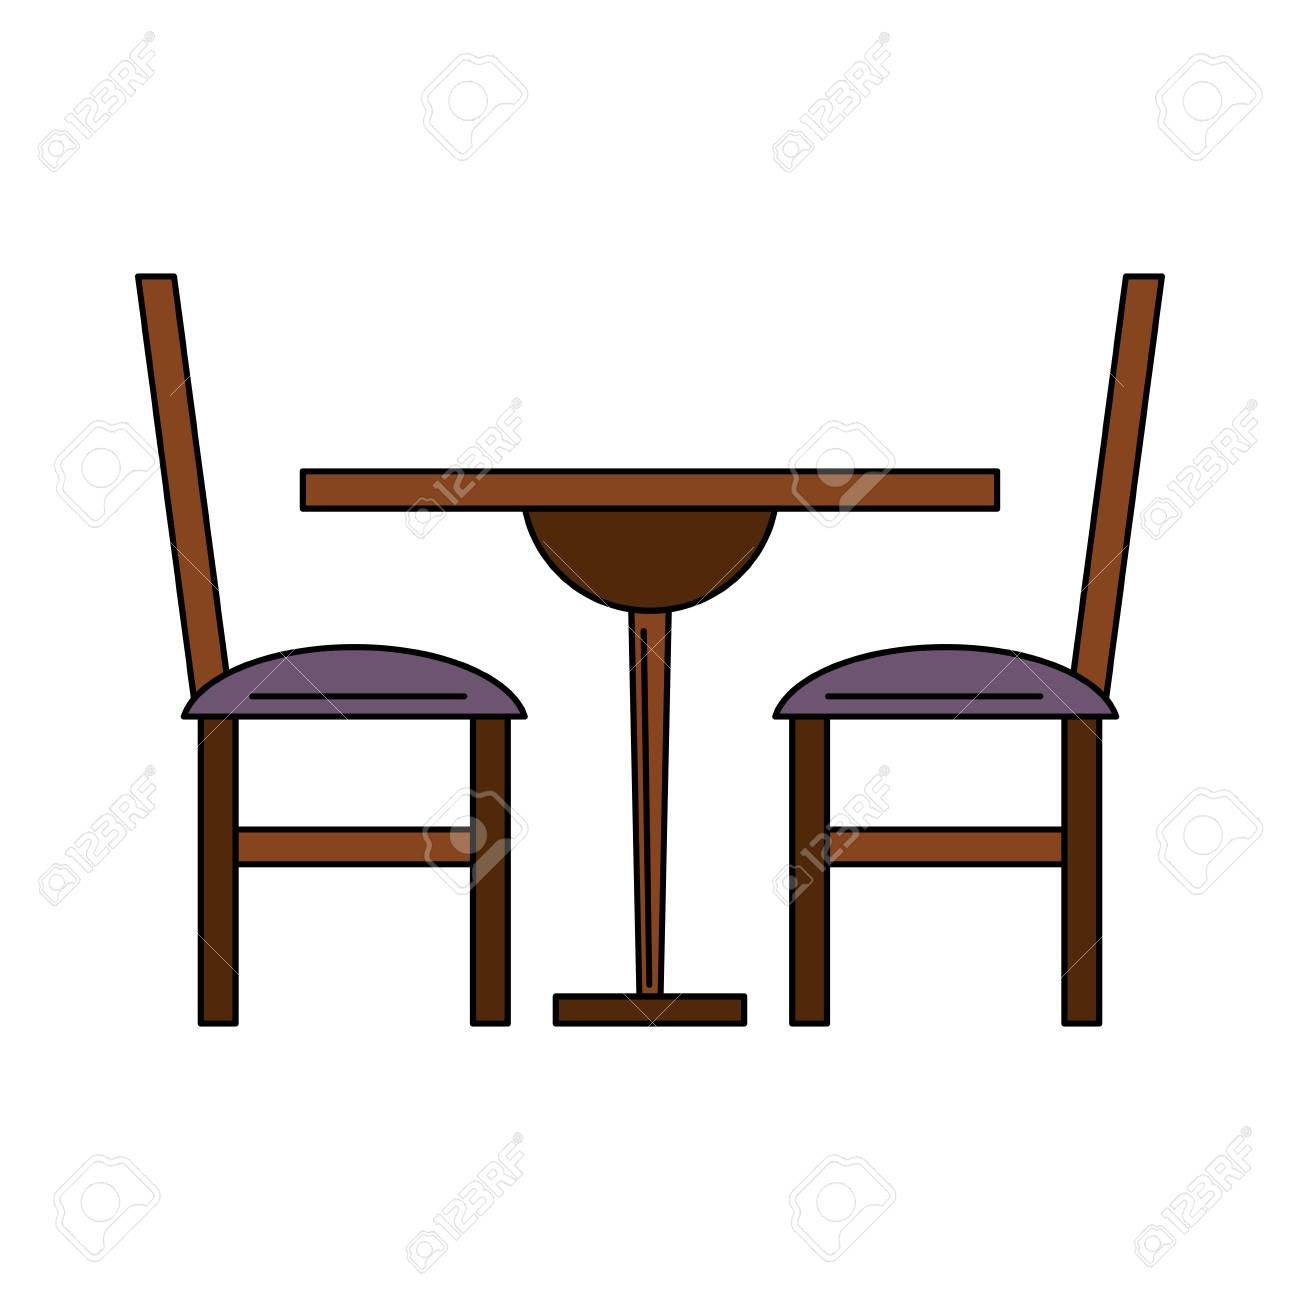 Dinning wooden table and chairs vector illustration graphic design stock vector 107197105